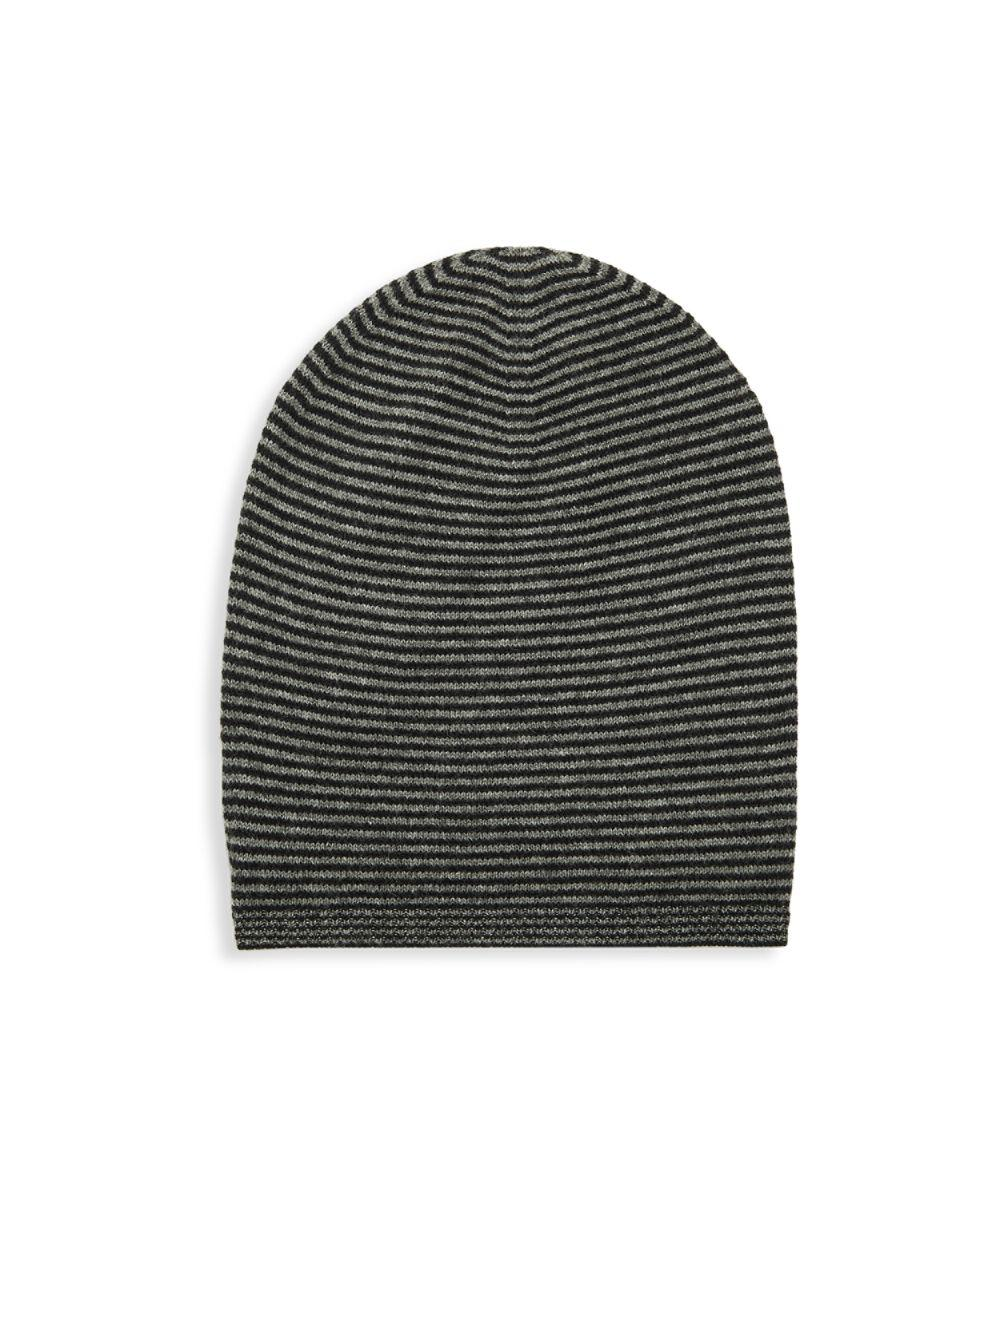 75c1e4bce4893 Lyst - Saks Fifth Avenue Striped Cashmere Beanie in Gray